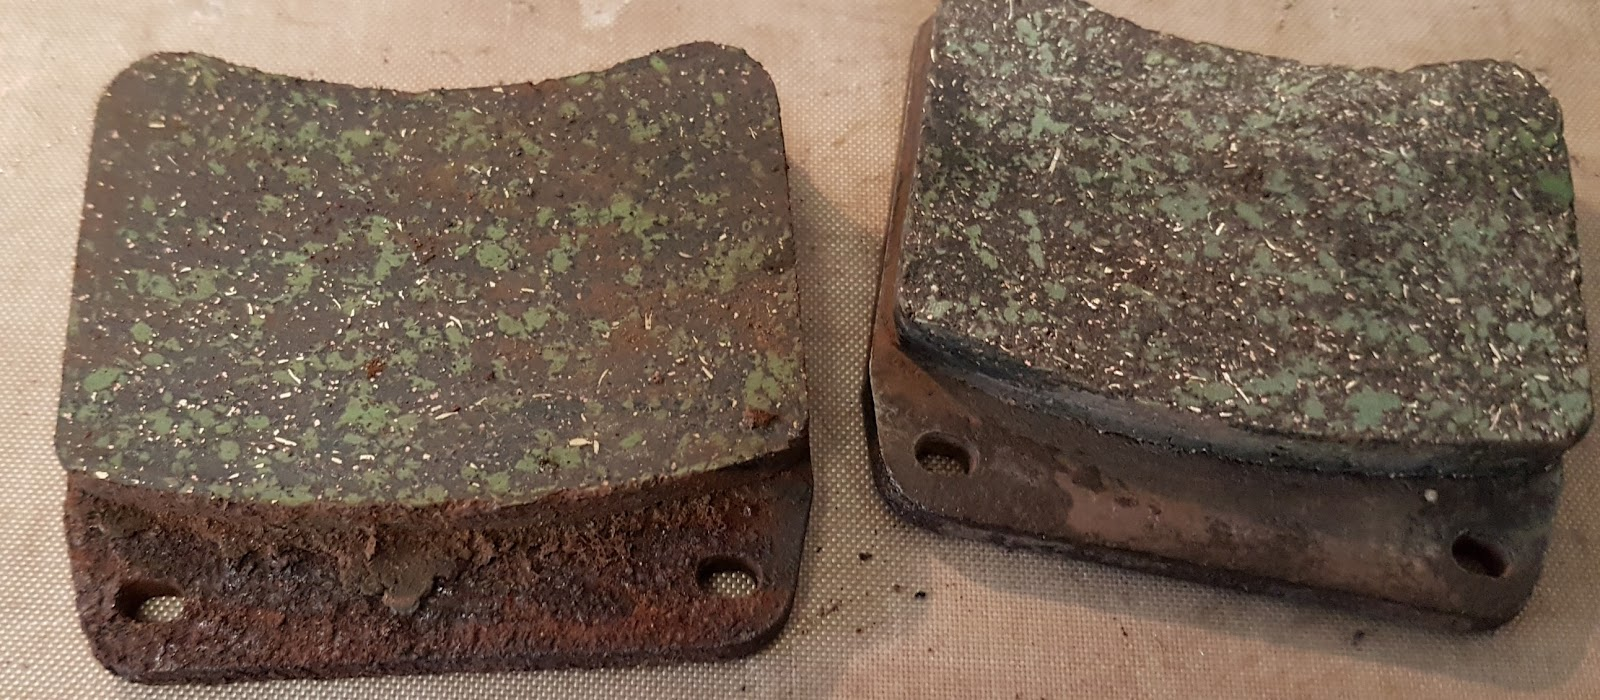 Bonneville brake pads after years of standing.